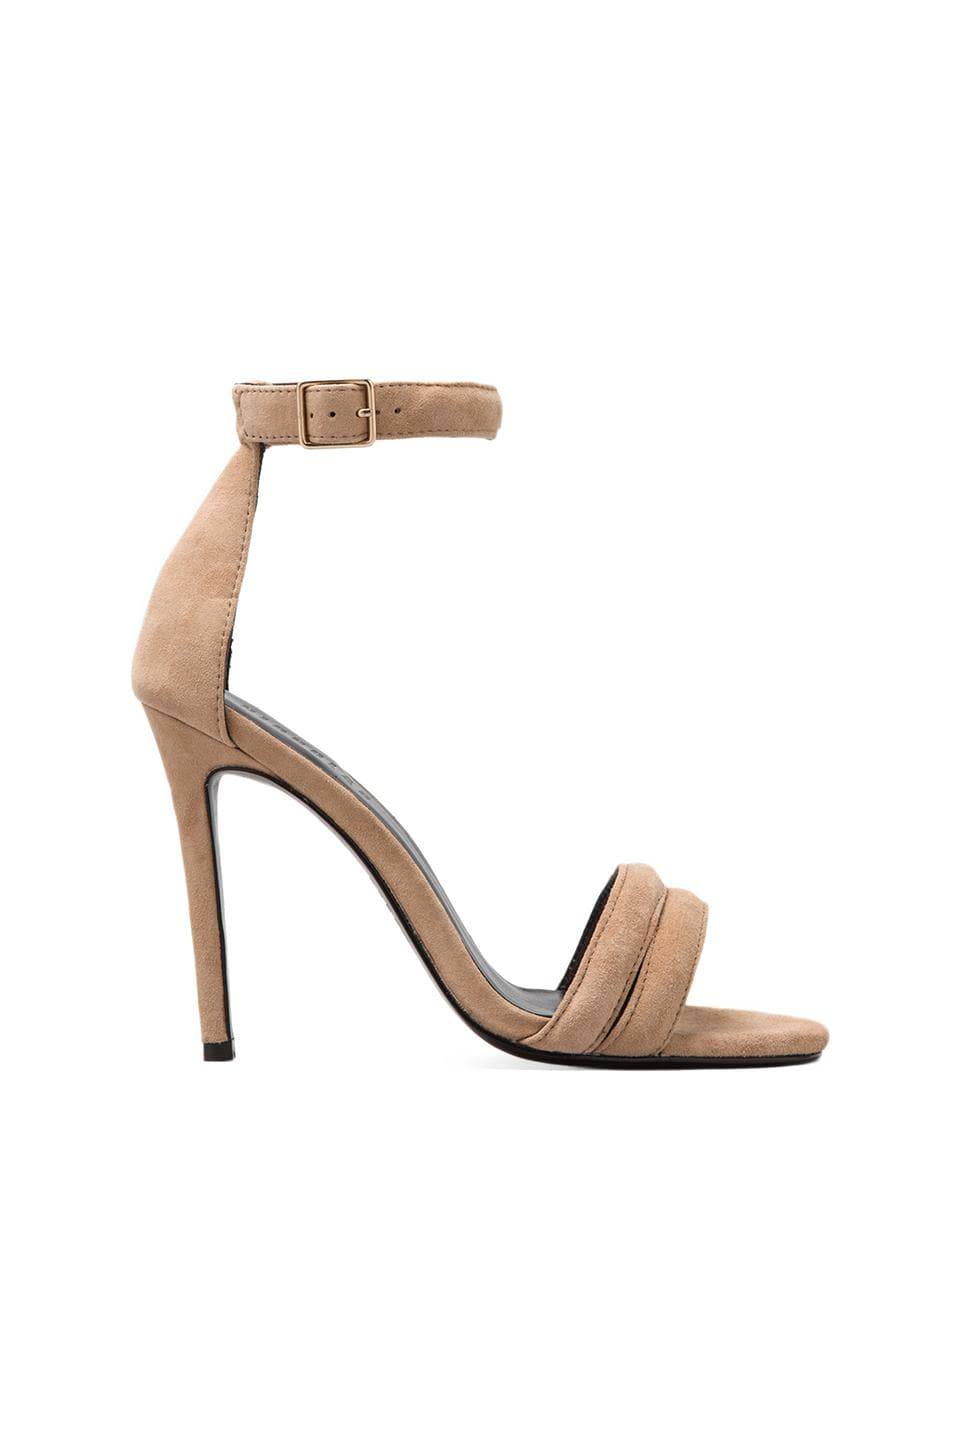 NICHOLAS Jocelyn Pump in Seashell Kid Suede